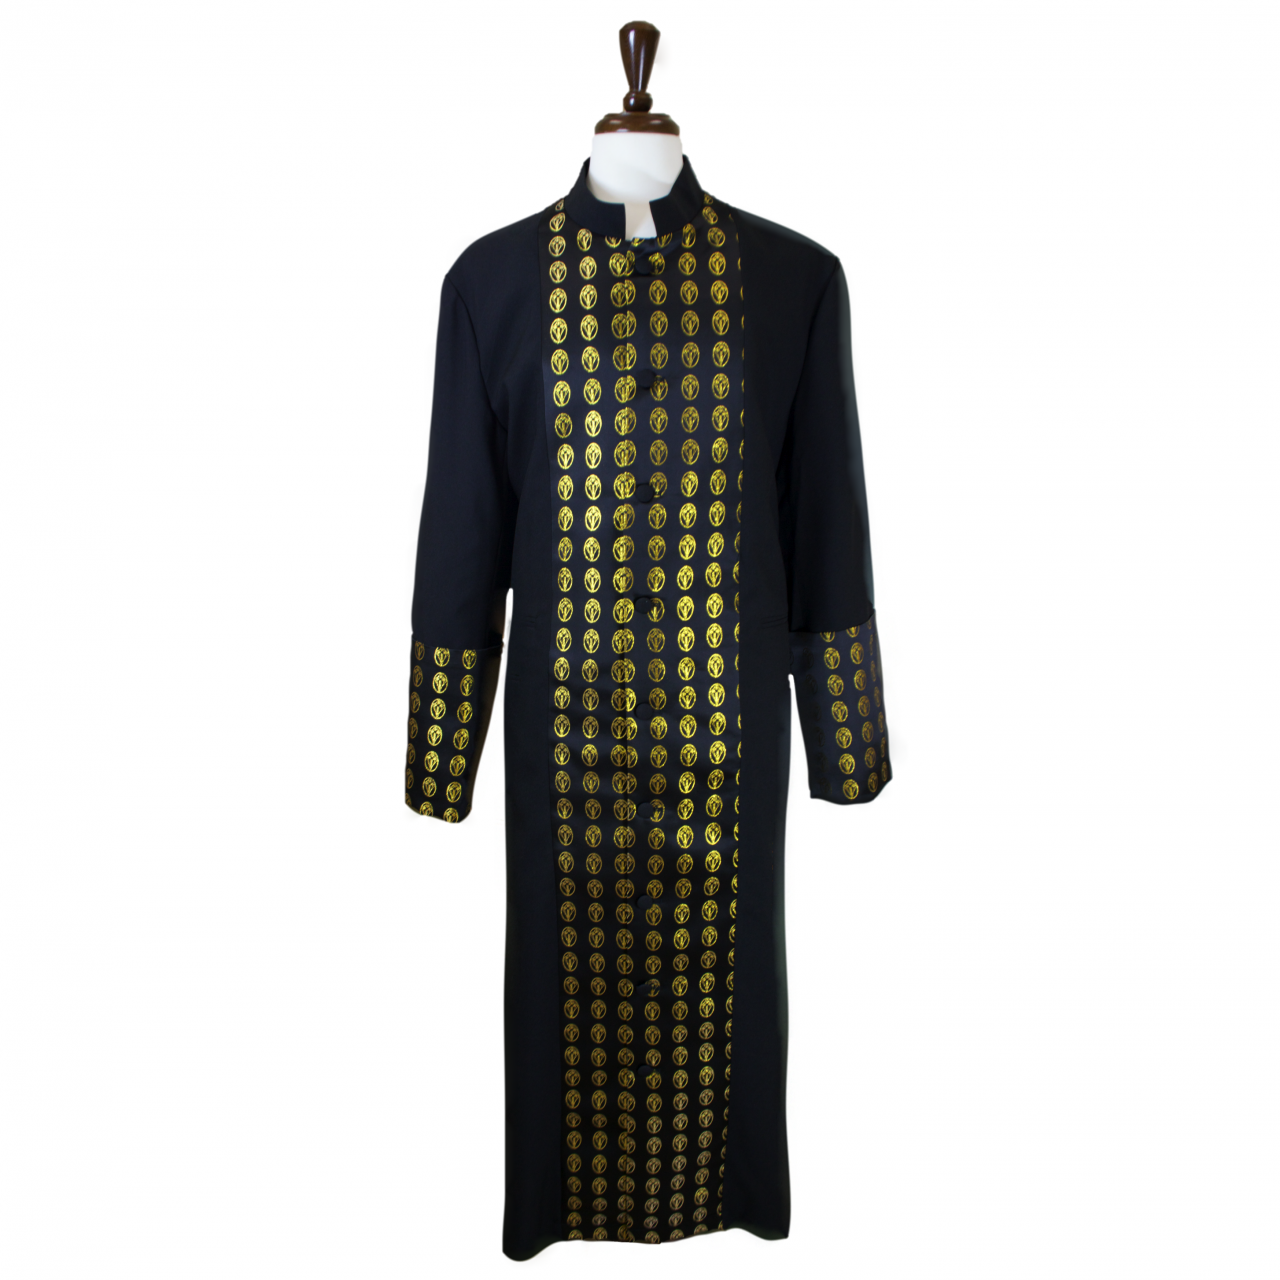 801 M. Men's Premium Pastor/Clergy Robe - Black/Gold Metallic Brocade